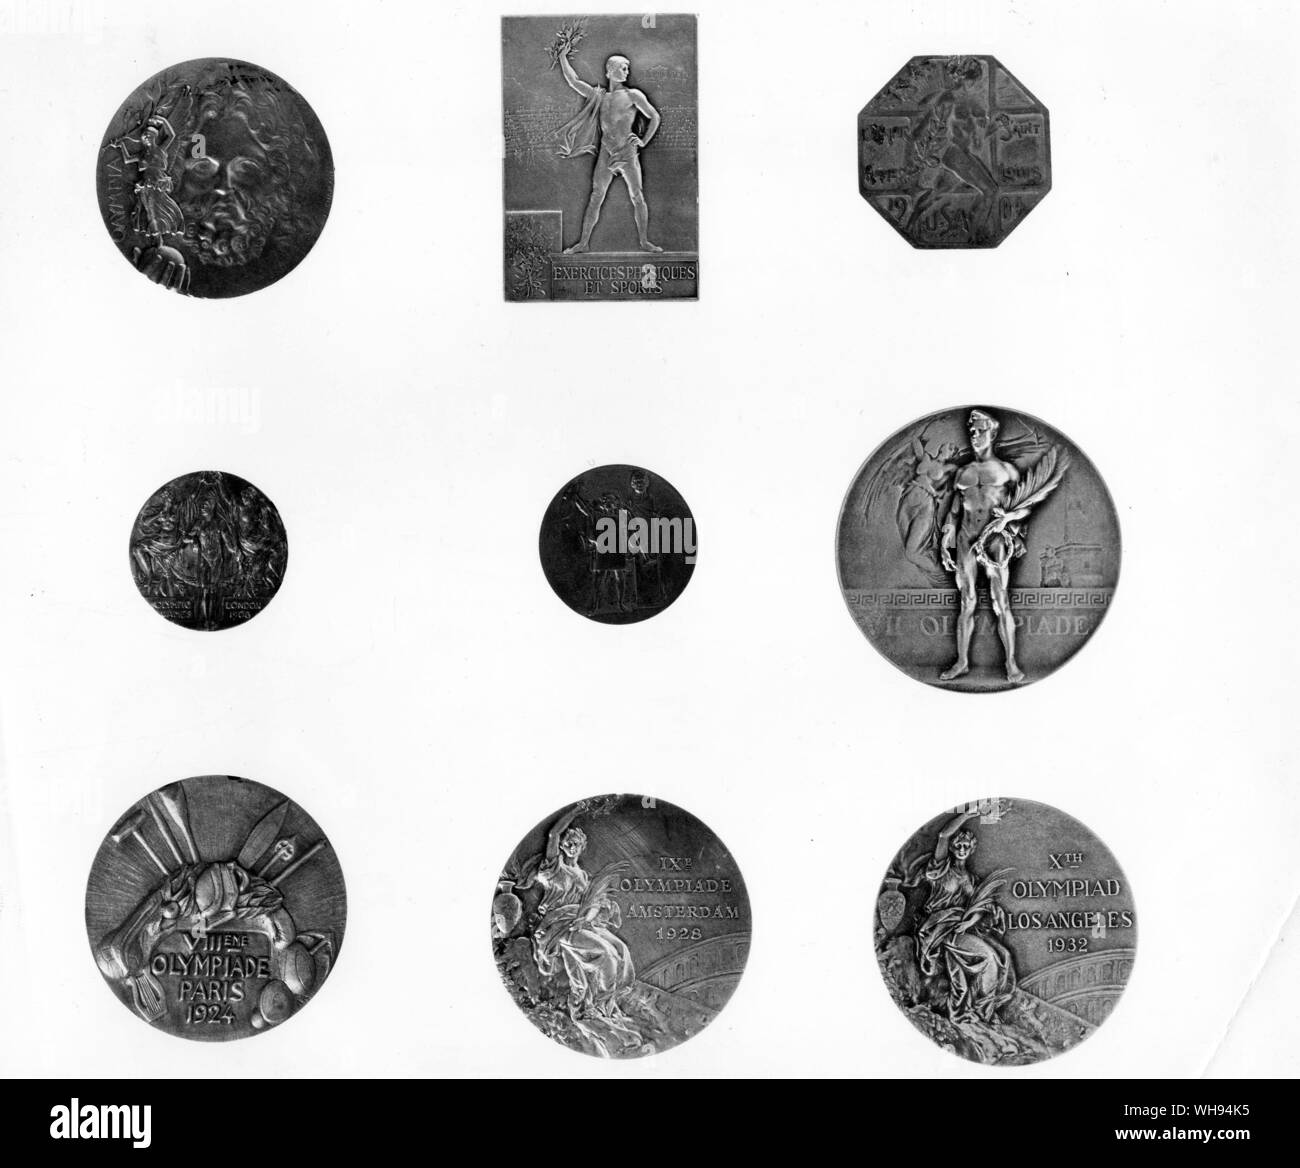 Official Olympic Medals 1896-1932: (l-r top): Greece Athens, 1896. France, Paris 1900. USA, St Louis, 1904. (l-r middle) Great Britain, London, 1908. Stock Photo